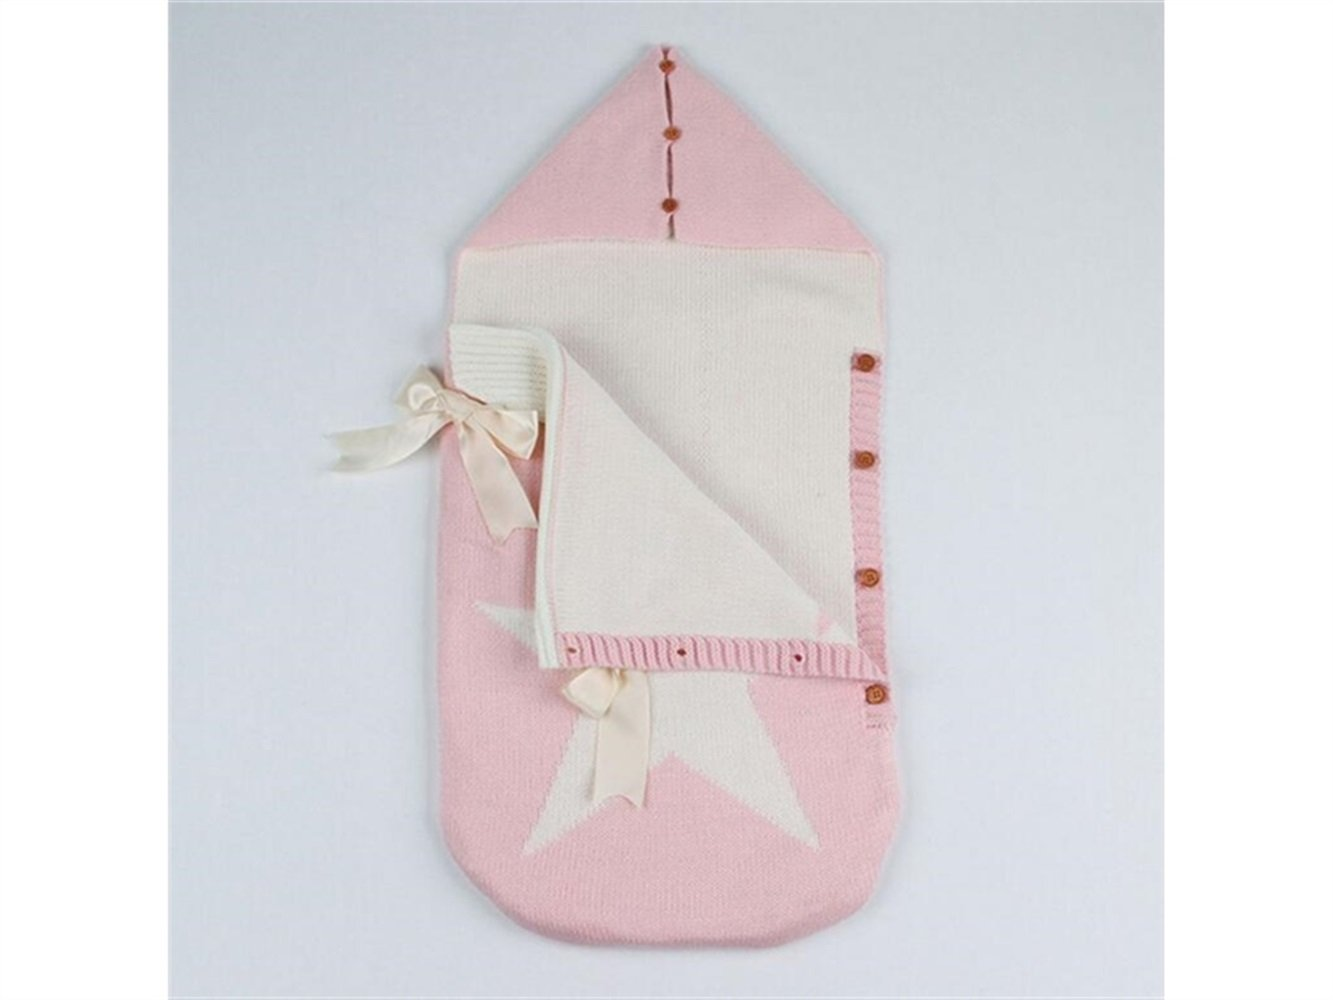 Amazon.com: Zehaer Night Sleeping Bag Newborn Toddler Pentagram Pattern Sleeping Bag Knitting Sleepsacks for 0-6 Months(Pink) Baby Products: Home & Kitchen